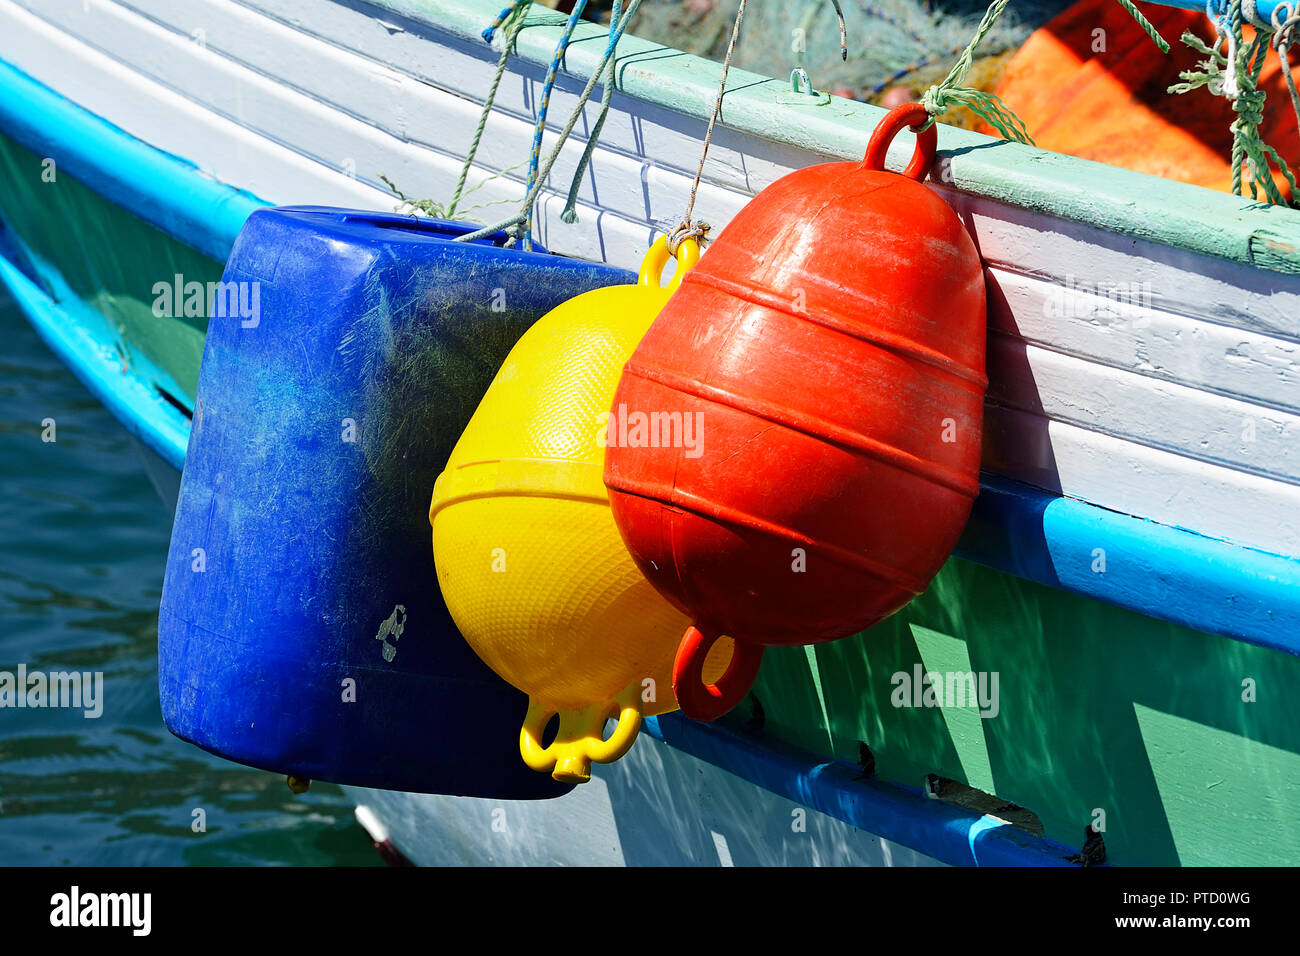 Fishing boat with colourful buoys, detail, impact protection, Elounda, Crete, Greece - Stock Image